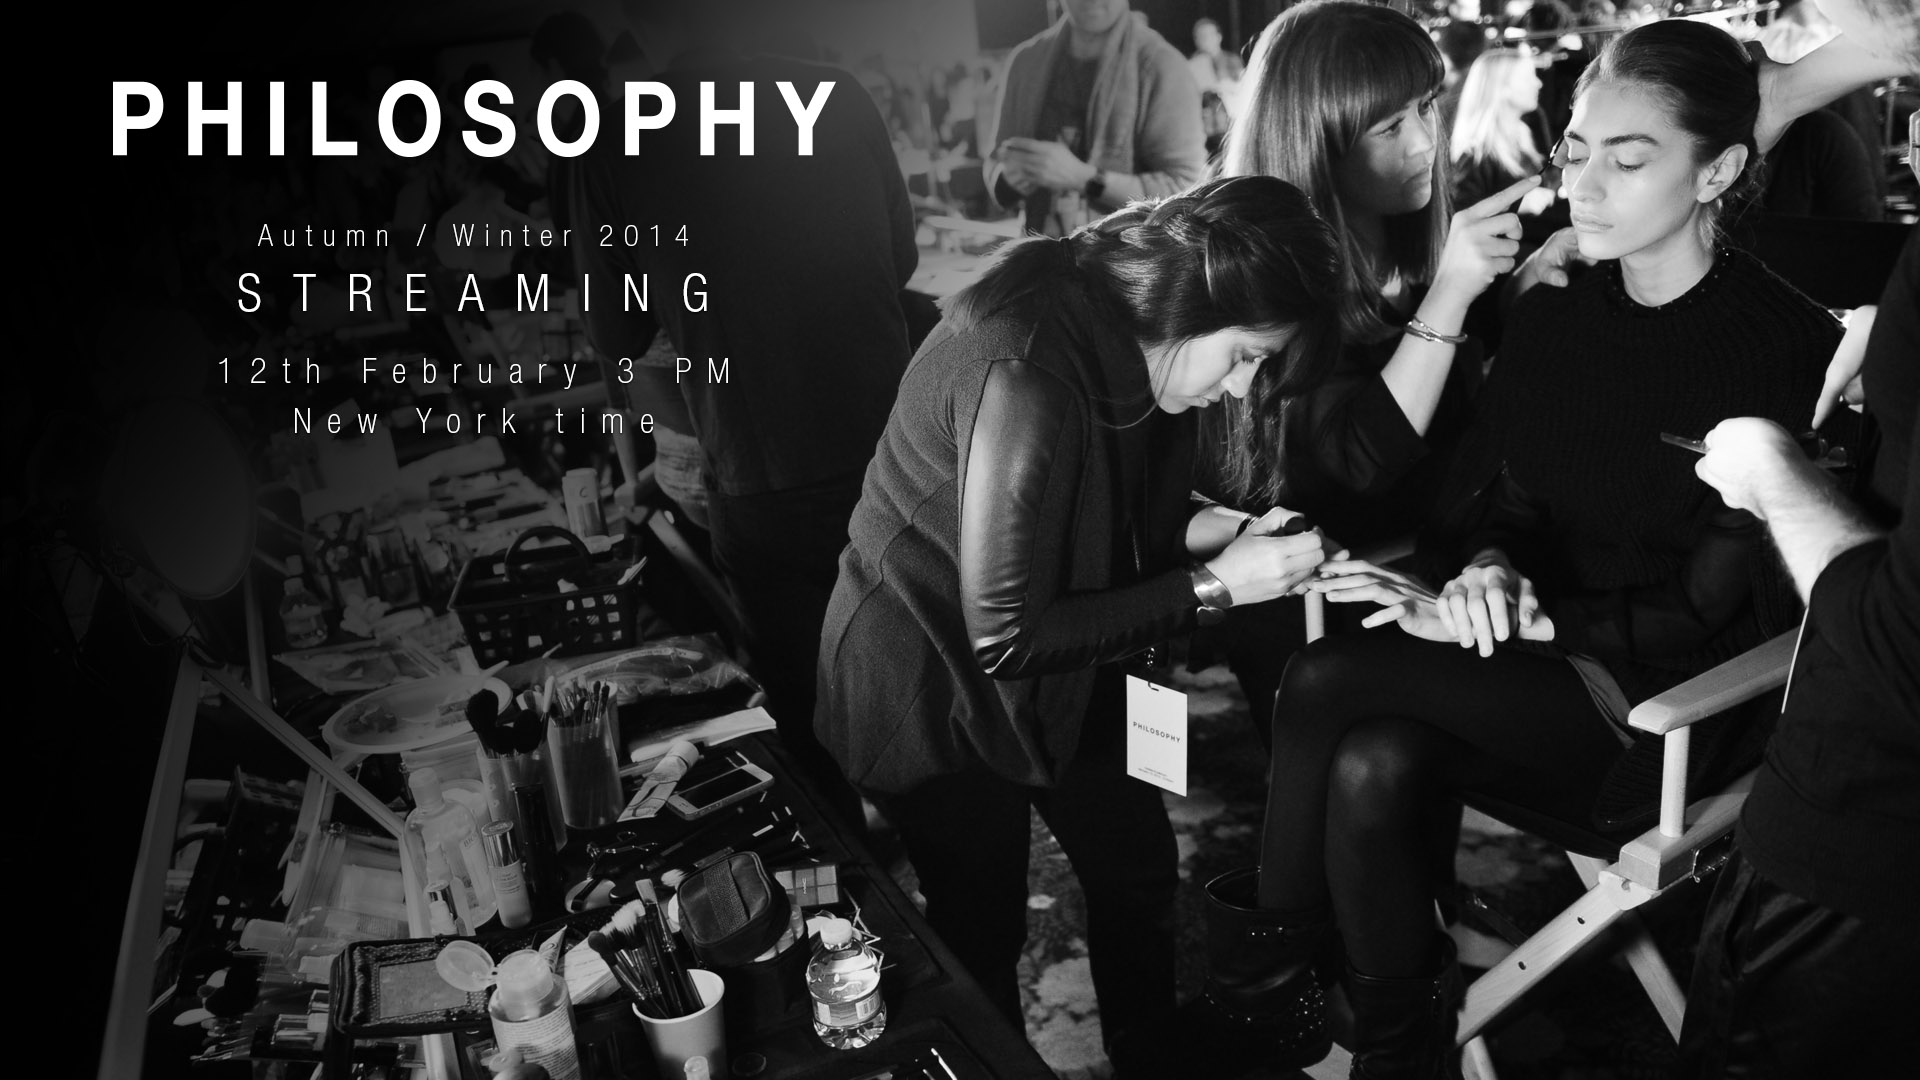 Philosophy Autumn/Winter 2014 Fashion Show Live Streaming - 12th February 3pm New York